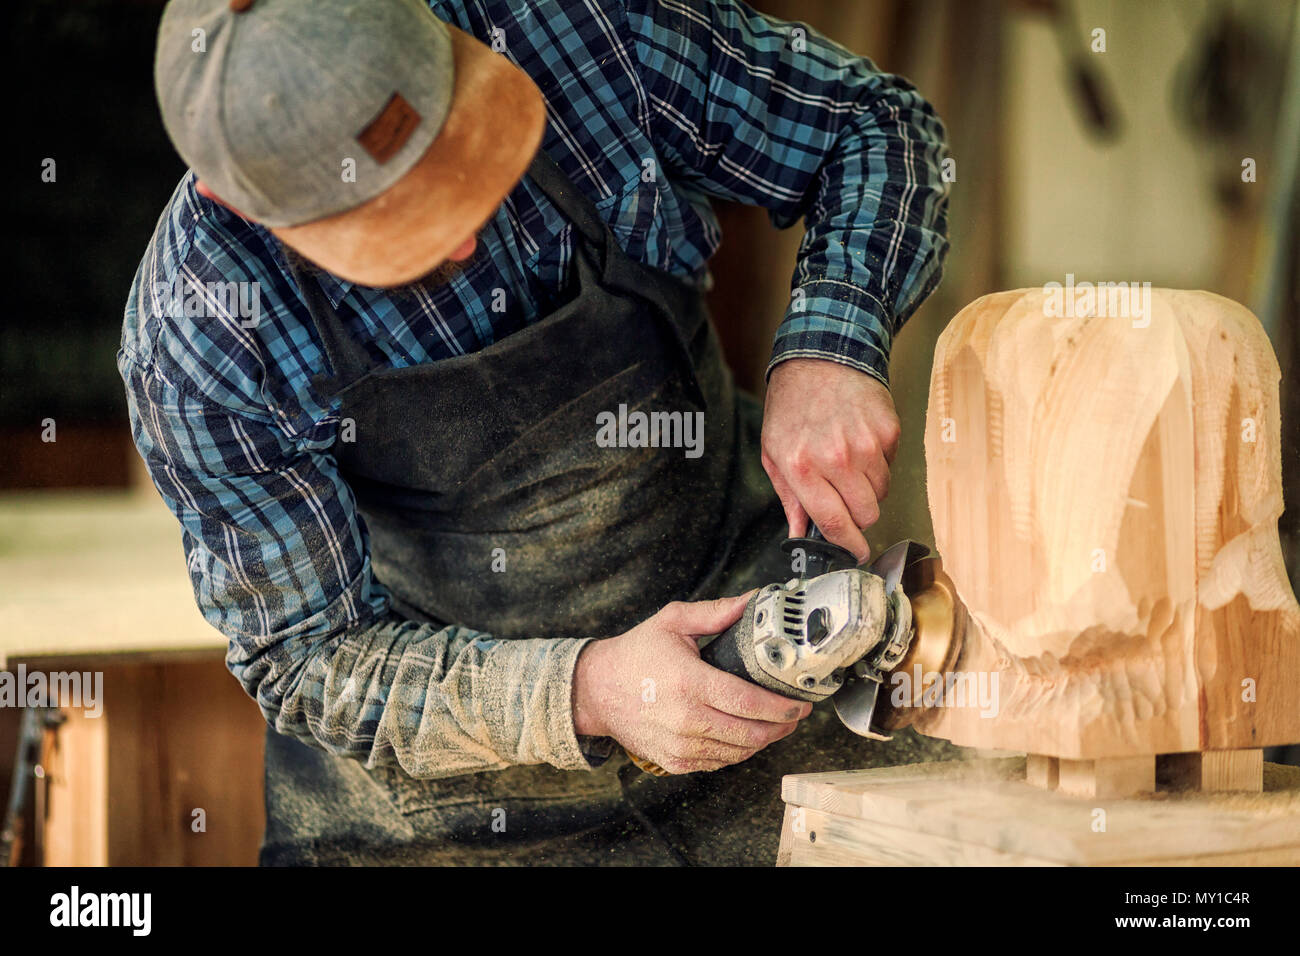 Countryside Carpenter Stock Photos Amp Countryside Carpenter